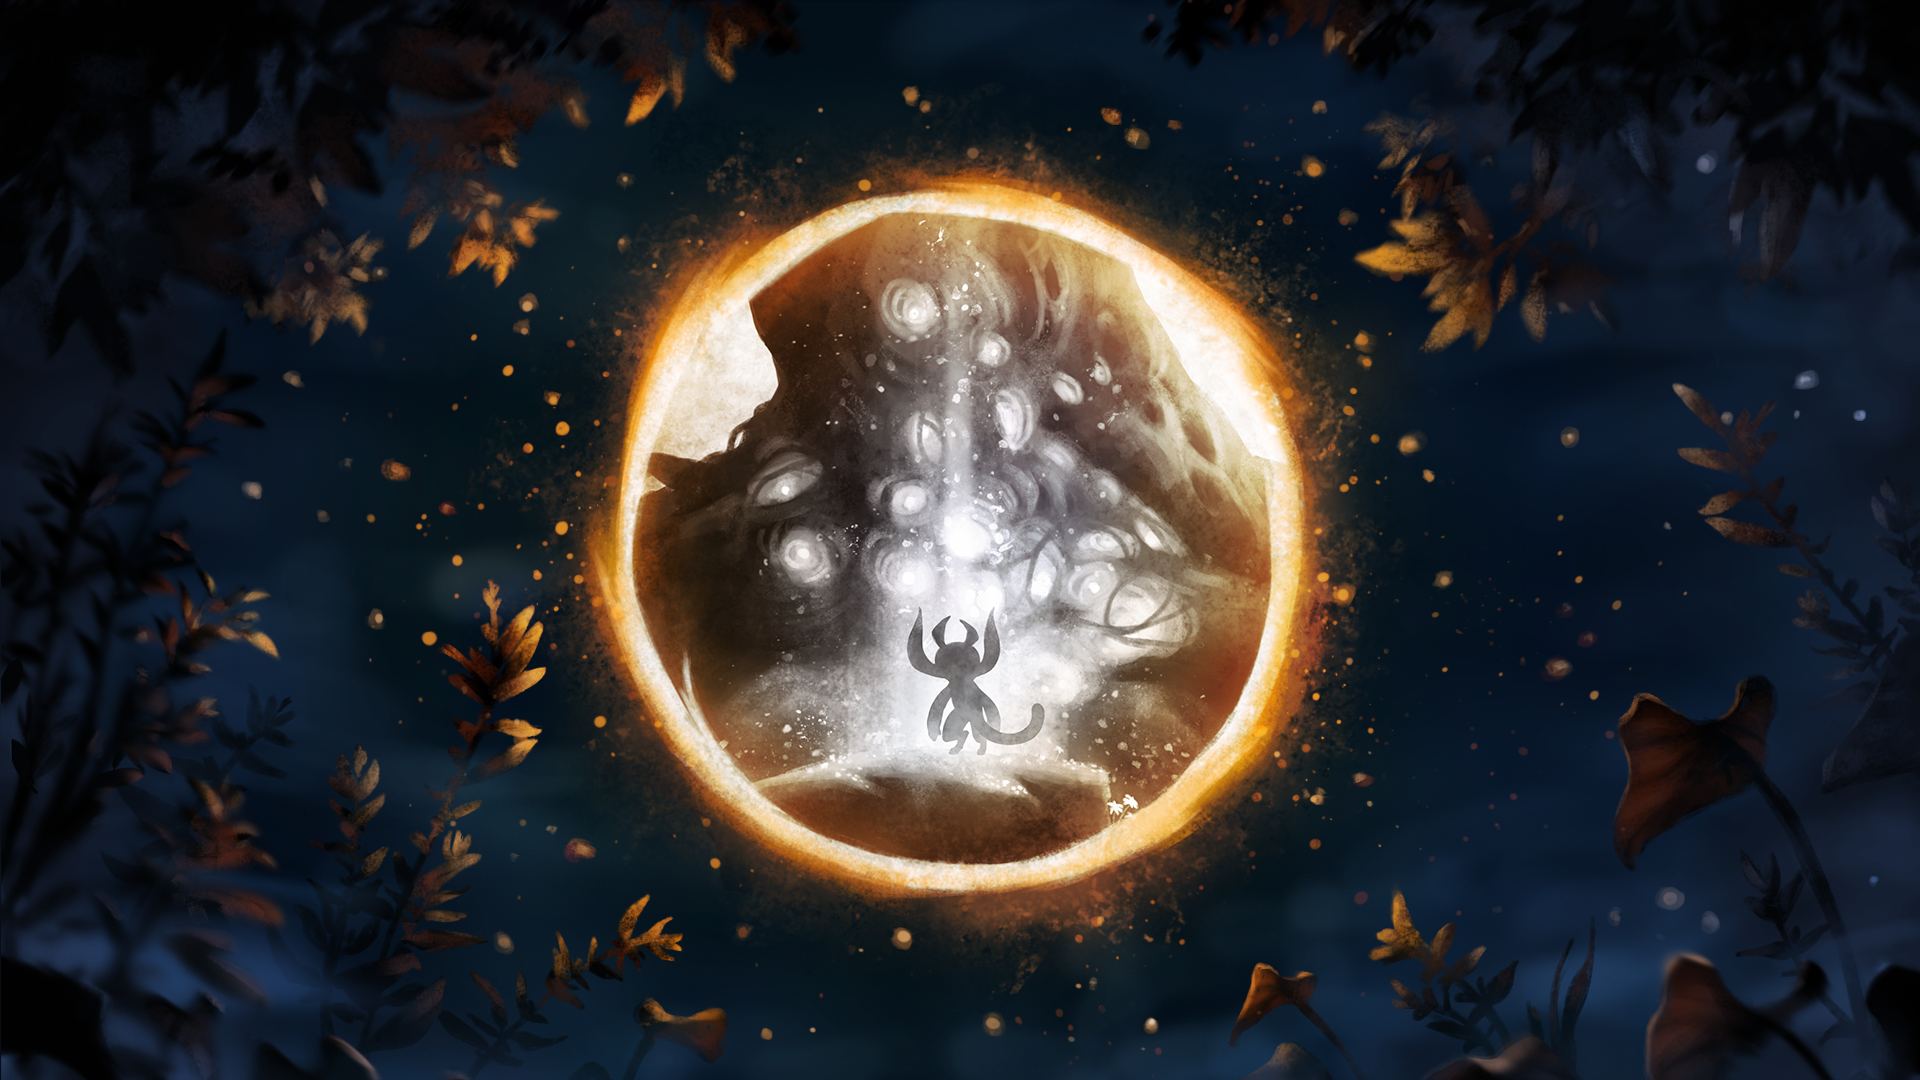 The Ancient Being achievement for Ori and the Blind Forest on Nintendo Switch